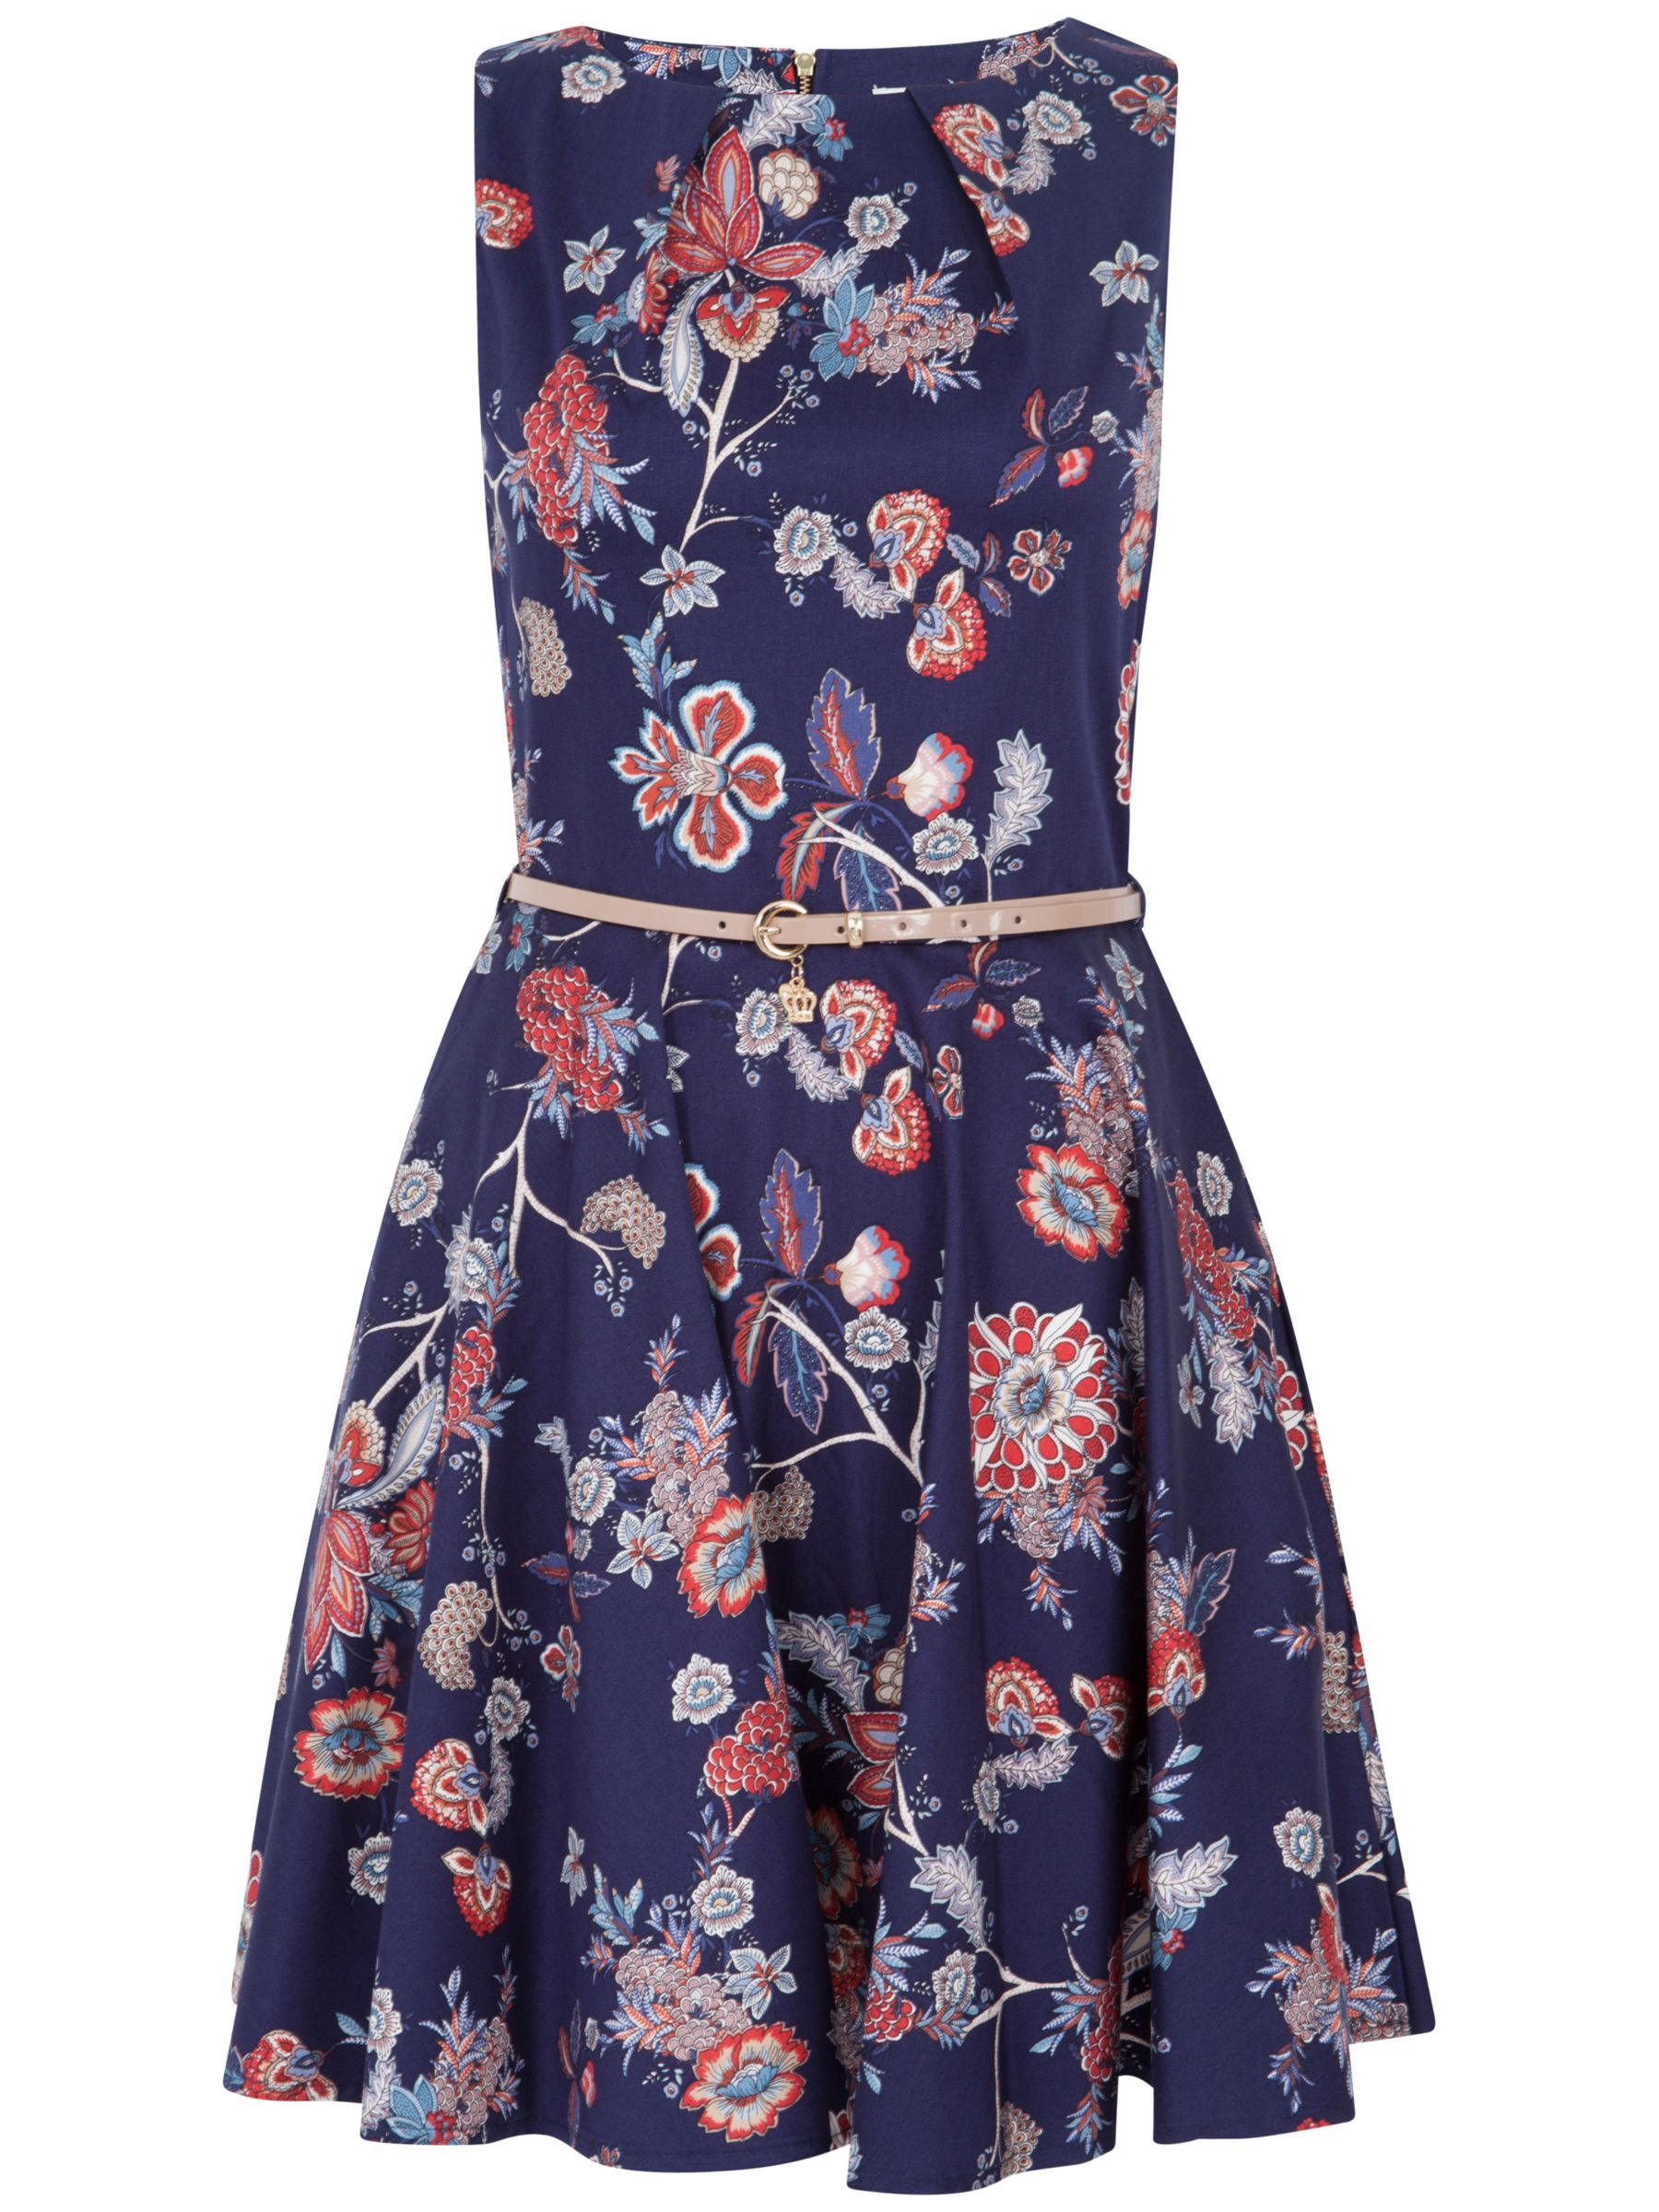 closet floral flared dress navy, closet, floral, flared, dress, navy, 8|12|16|14|10, women, womens dresses, 1673552